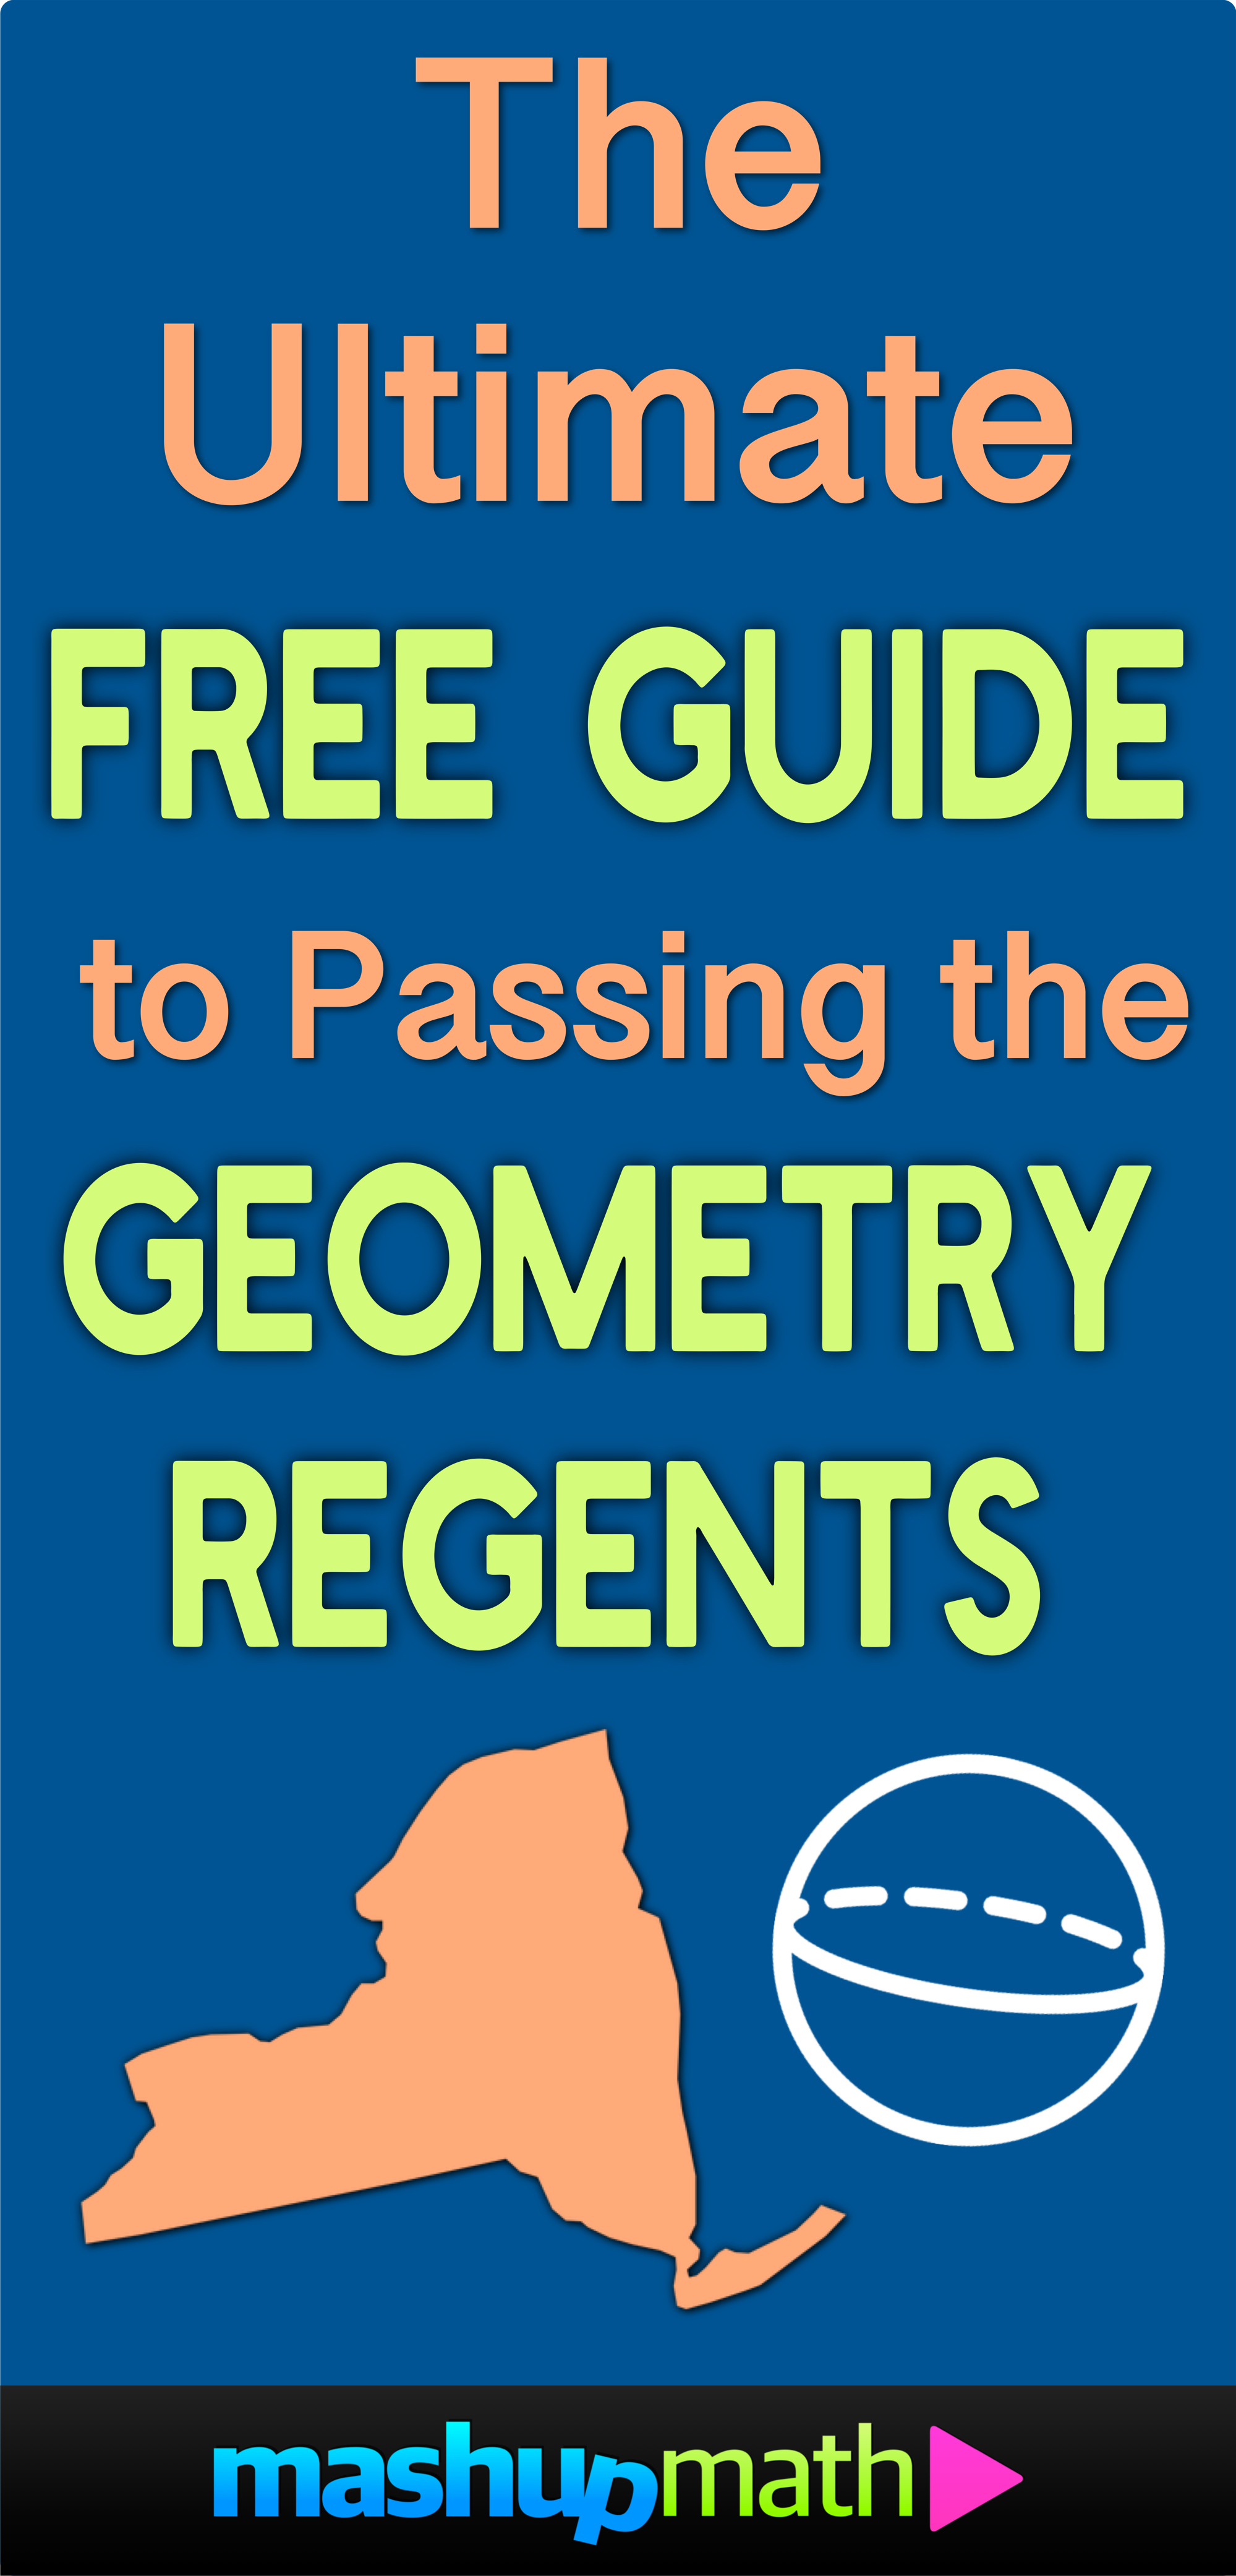 The Ultimate Guide to Passing the Geometry Regents Exam — Mashup Math